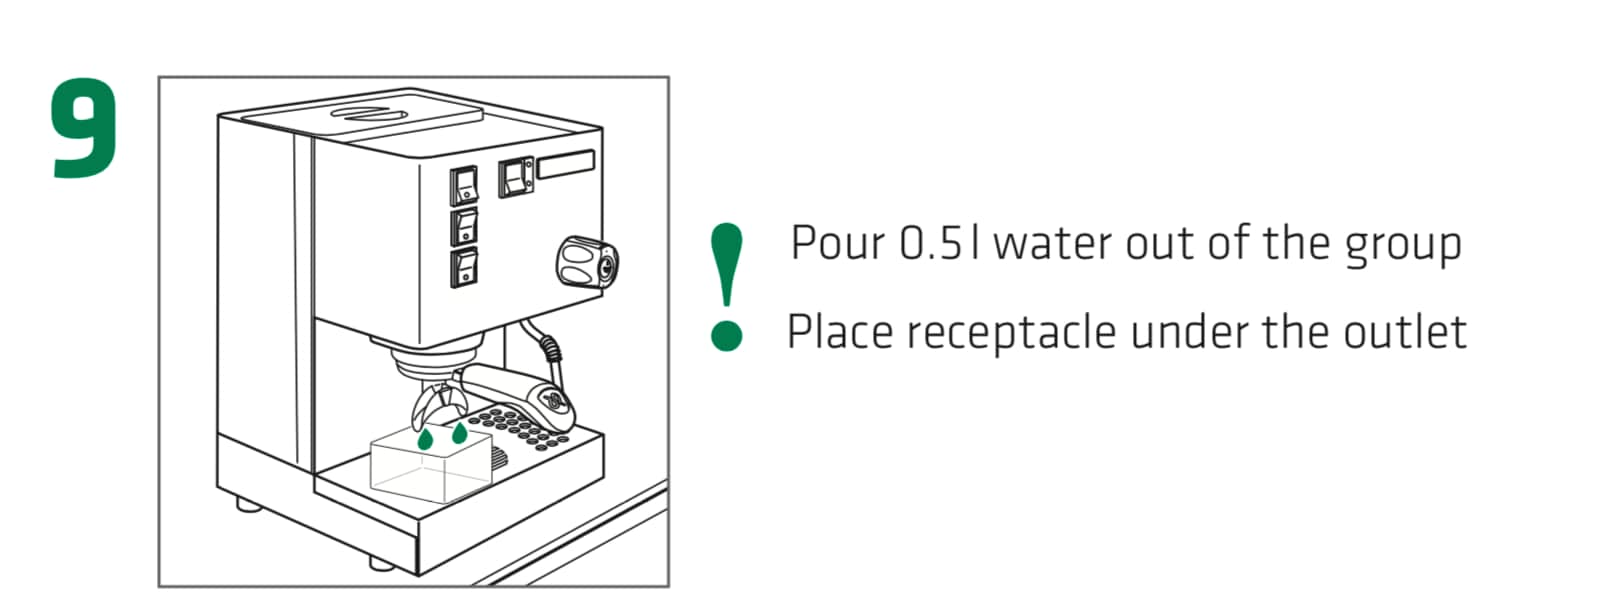 How to set up the Rancilio Silvia Espresso Machine, Step 9 : Pour 0.5L of water out of the main group. Makes sure to place an empty receptacle under the group outlet to catch the water.